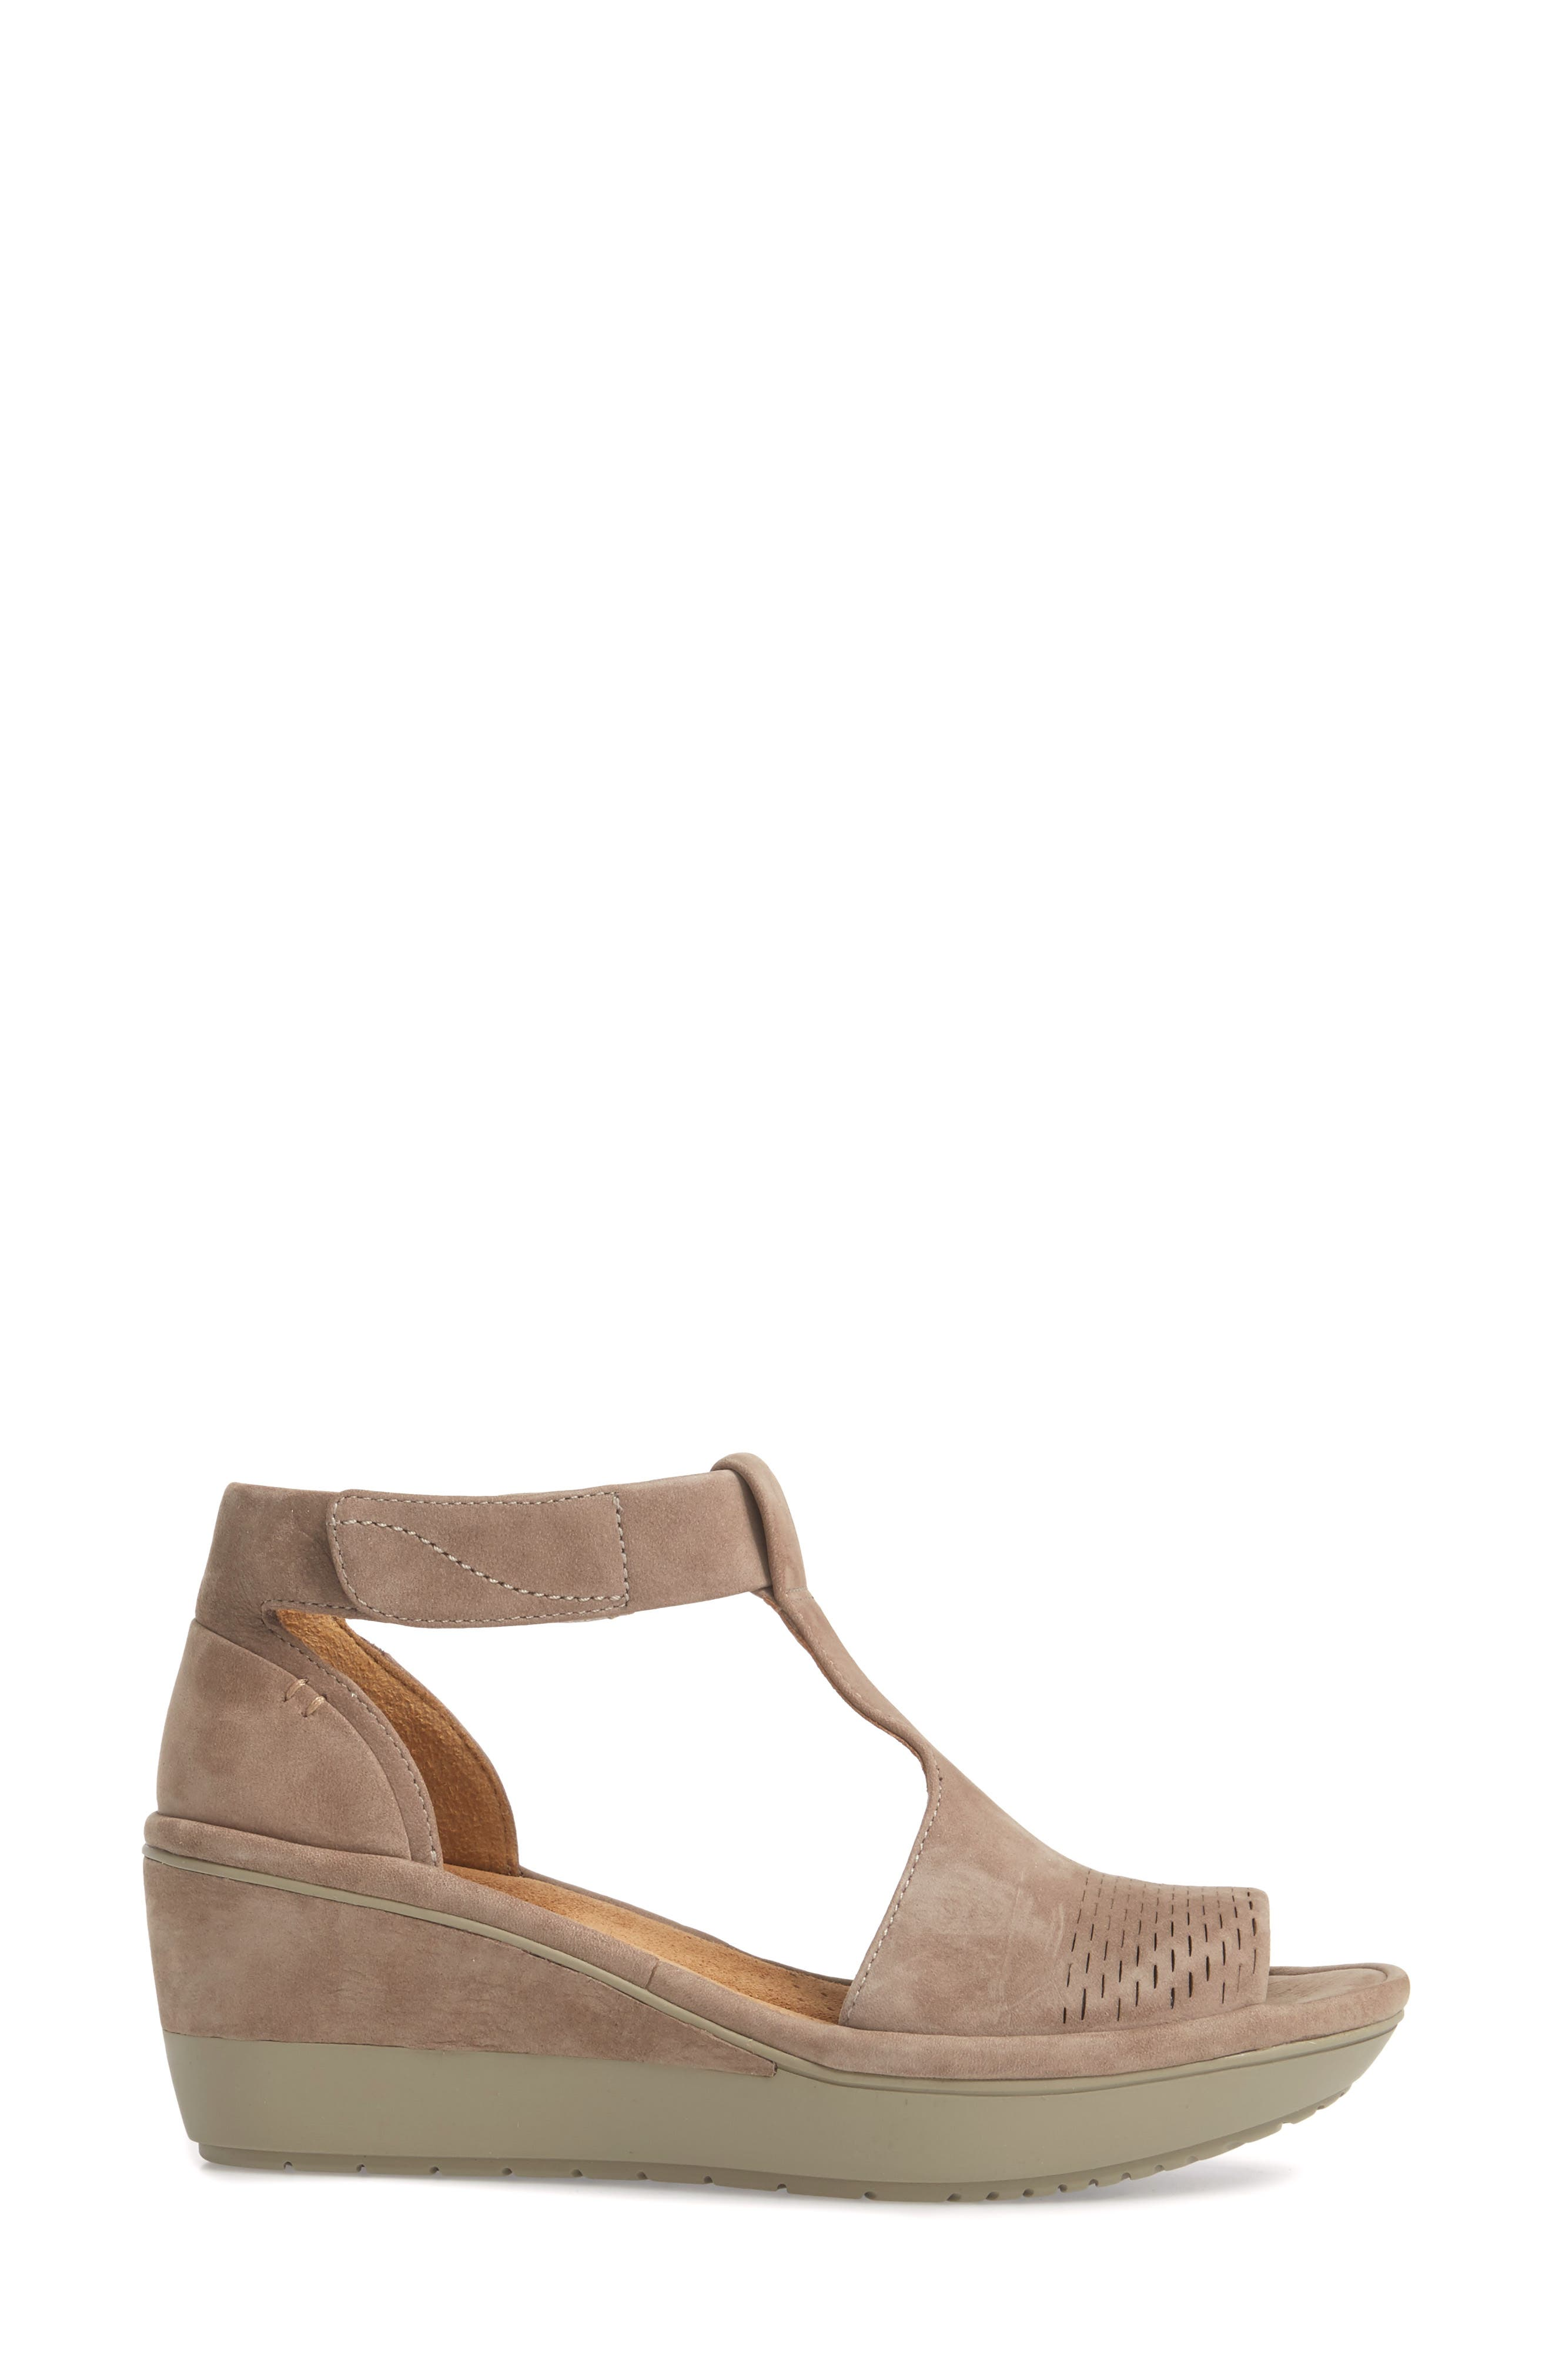 Wynnmere Avah T-Strap Wedge Sandal,                             Alternate thumbnail 3, color,                             WARM GREY NUBUCK